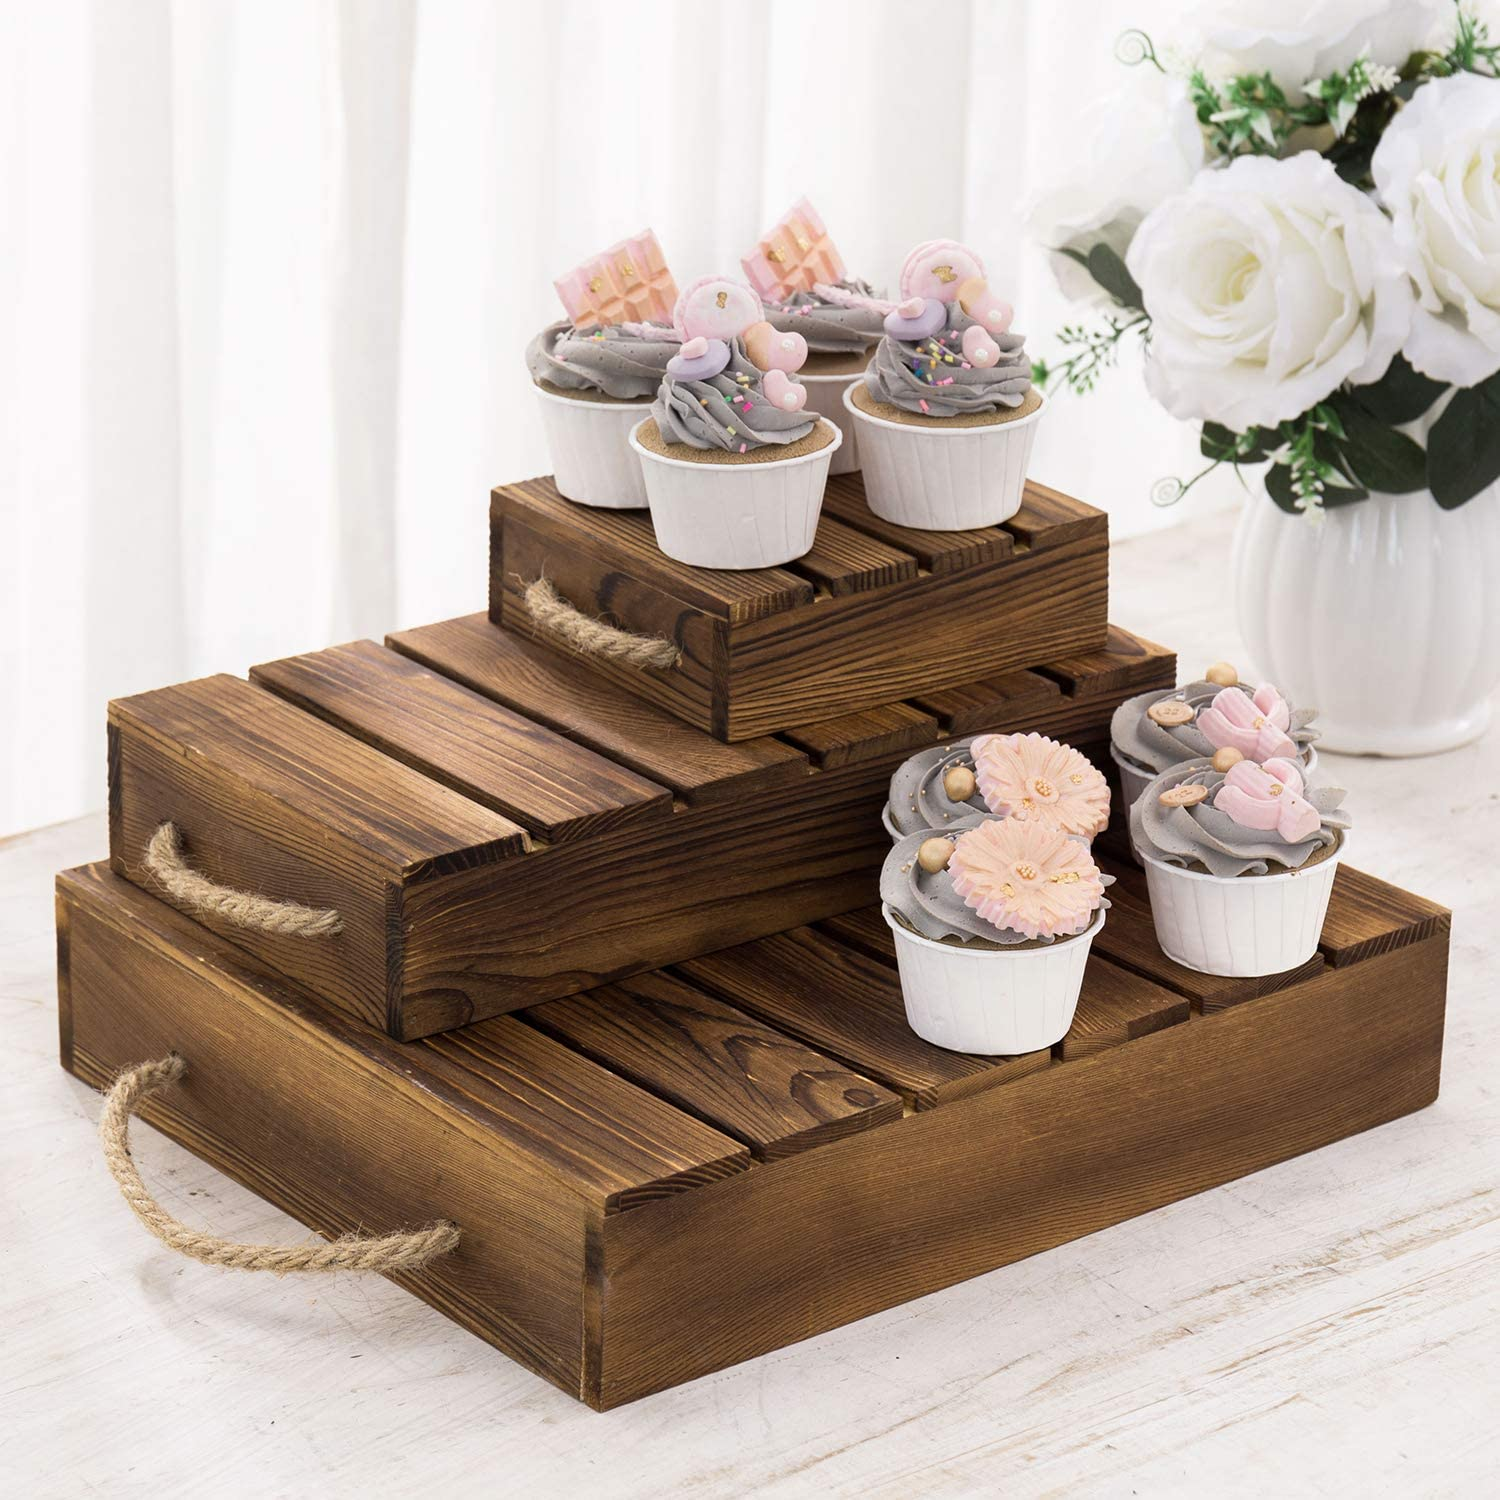 MyGift 3-Tier Rustic Burnt Wood Pallet Style Cupcake/Dessert Riser Stands and Retail Merchandise Displays with Rope Handles